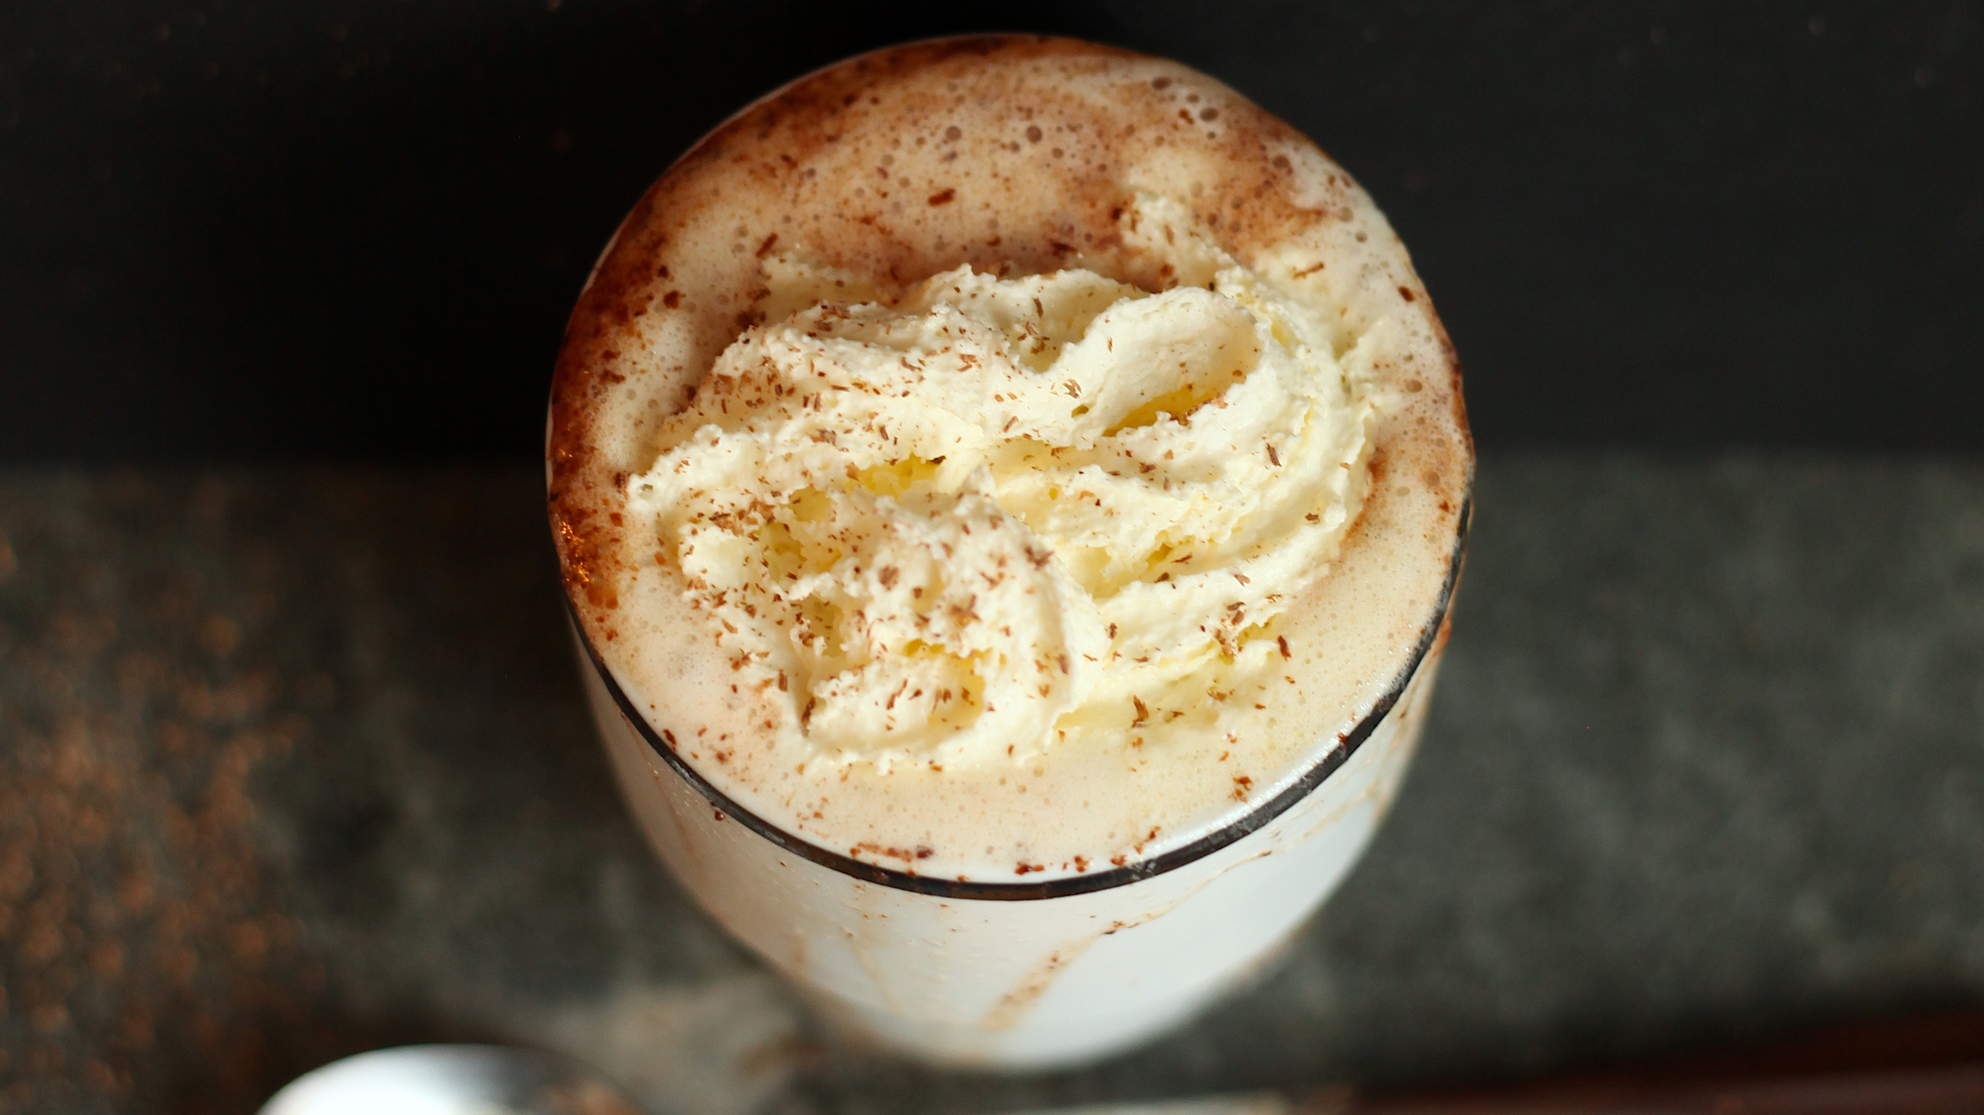 Cup of creamy Irish hot chocolate sprinkled with cinnamon